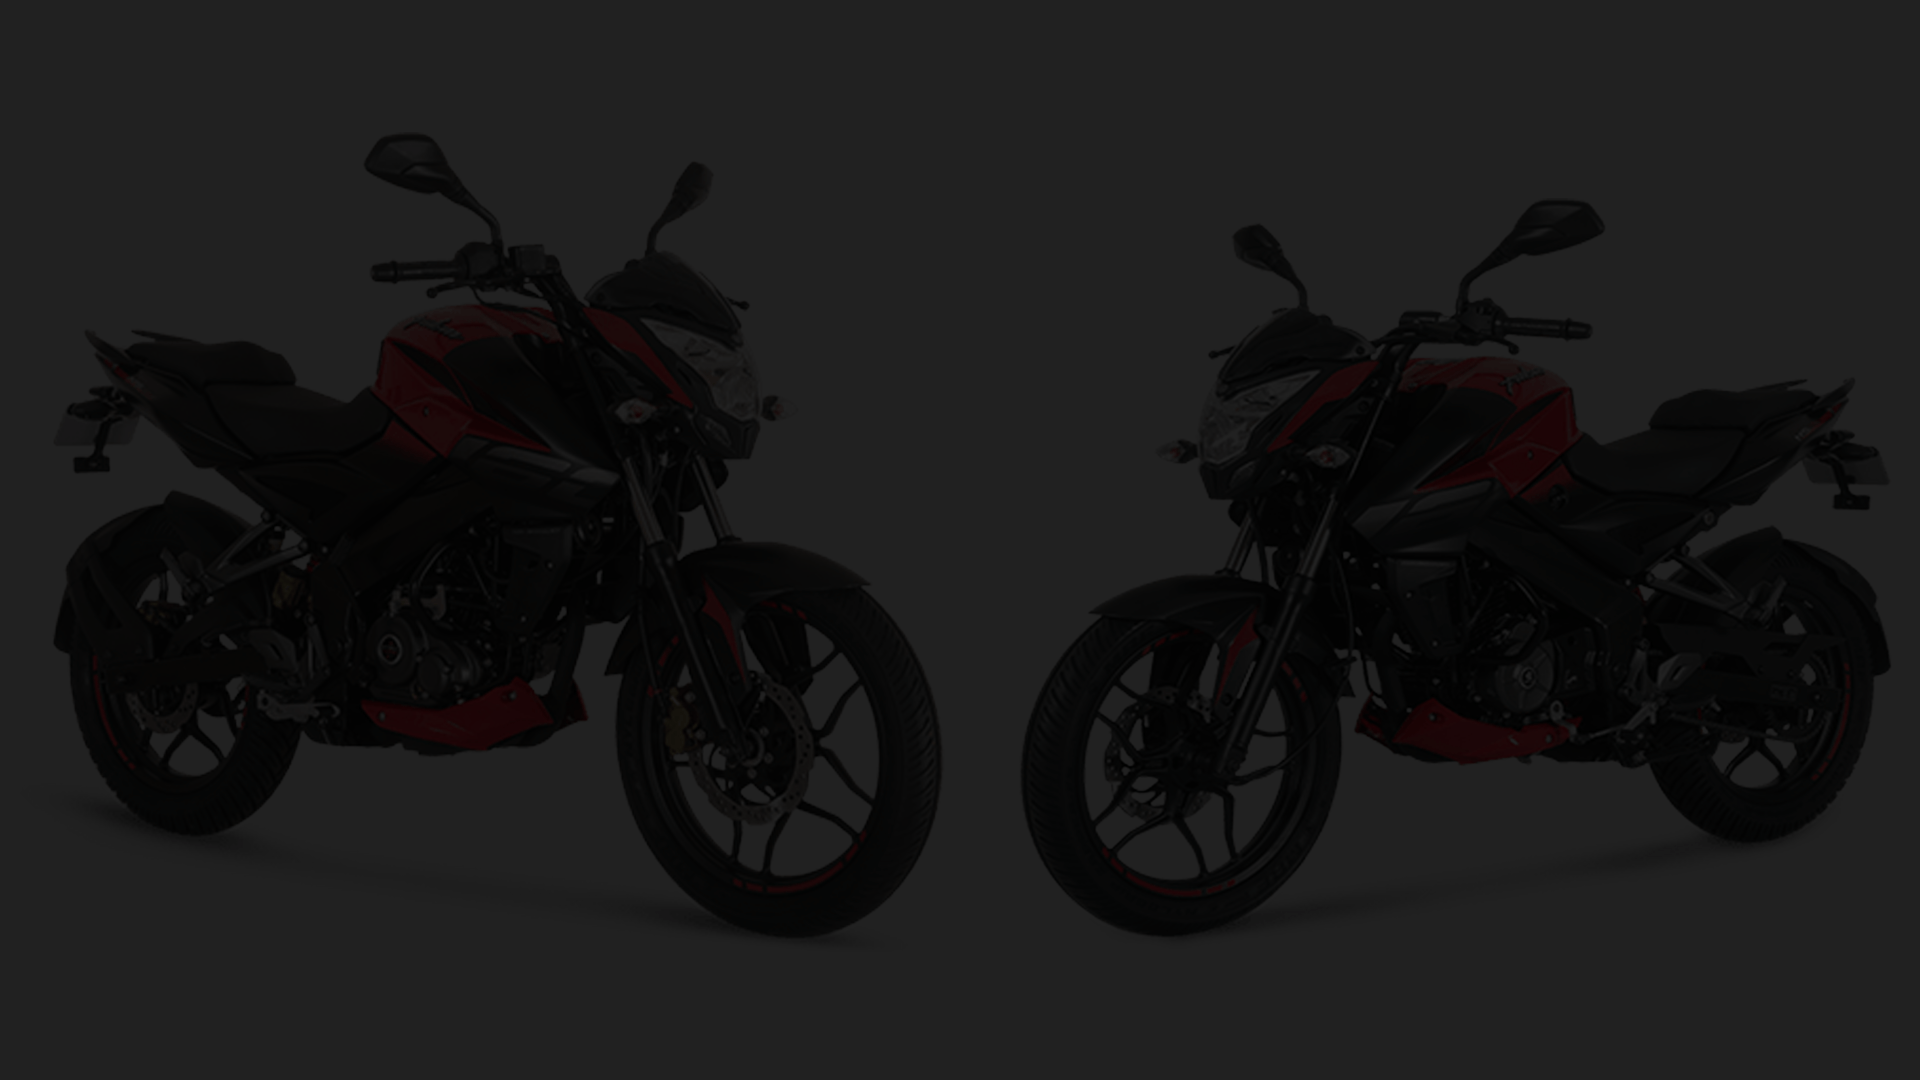 Pulsar NS 160 FI ABS dark background